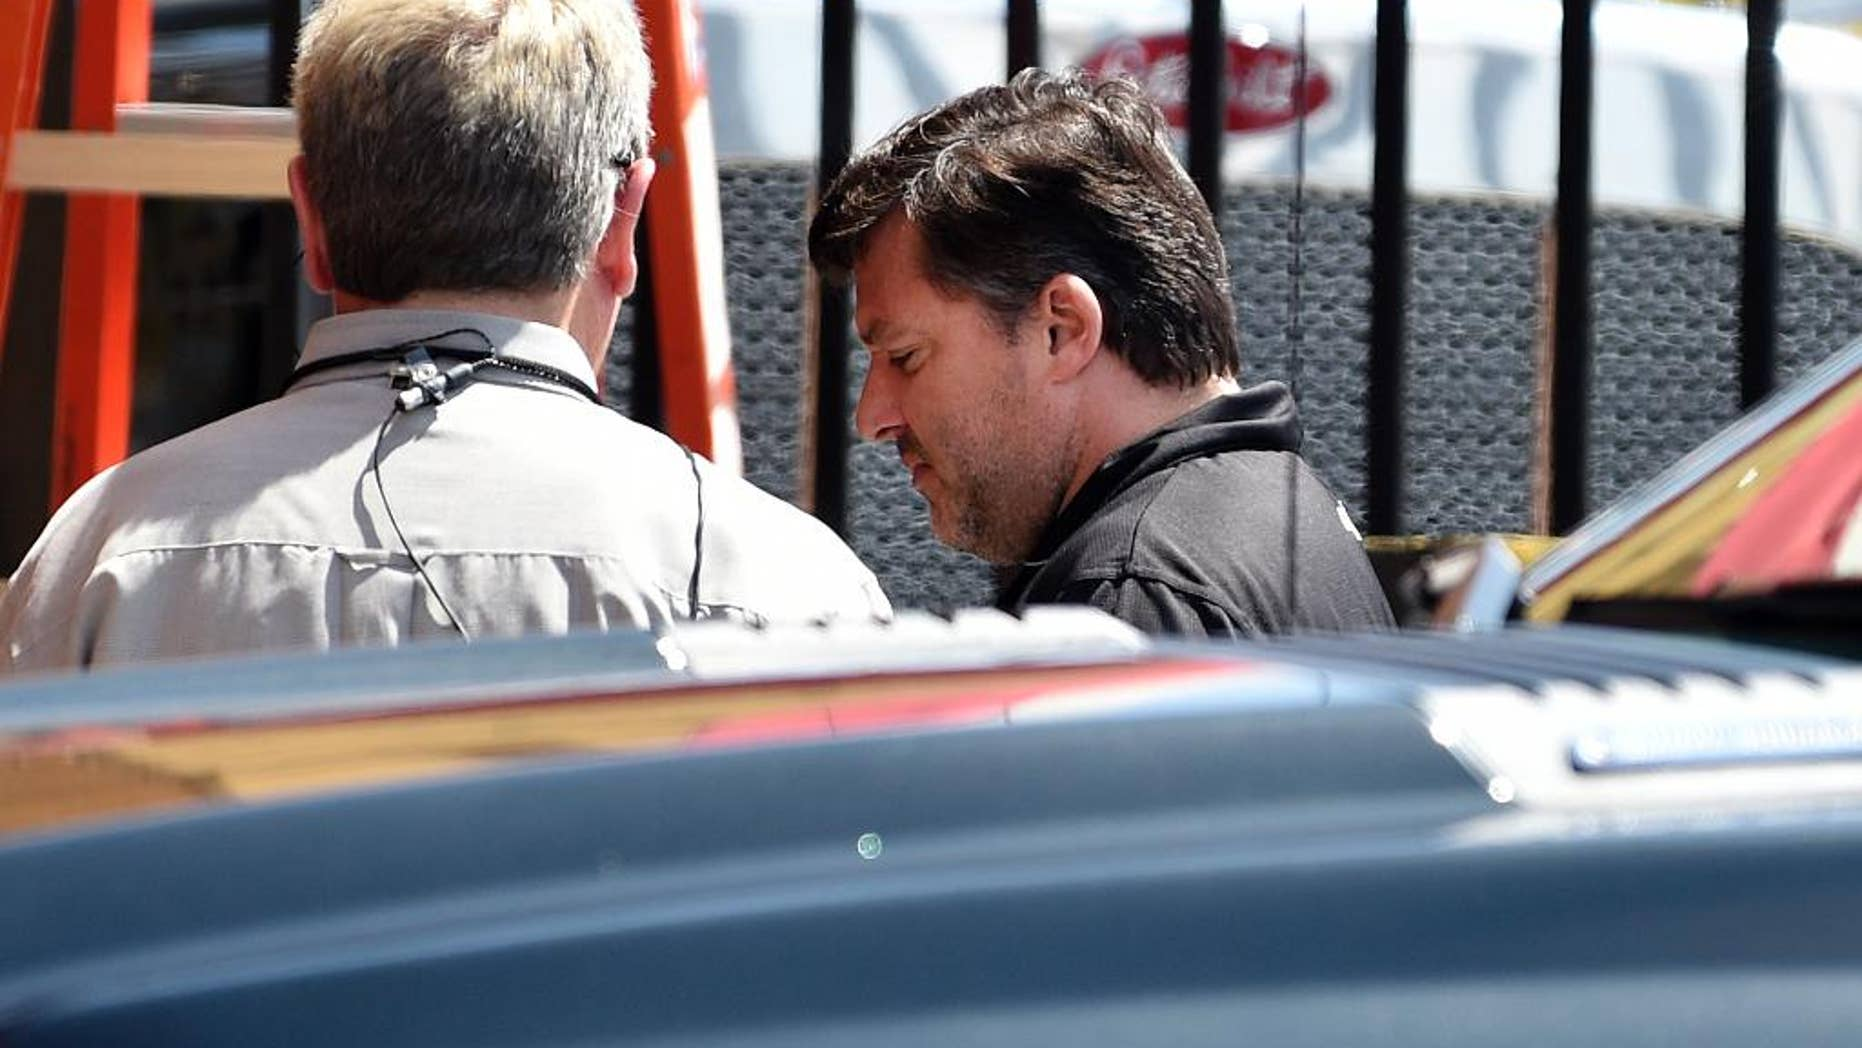 """NASCAR auto racing driver Tony Stewart, right, arrives for a news conference at Atlanta Motor Speedway in Hampton, Ga., Friday, Aug. 29, 2014. Stewart says the death of Kevin Ward Jr. will """"affect my life forever"""" as he returned to the track for the first time since his car struck and killed the fellow driver during a sprint-car race in New York. (AP Photo/David Tulis)"""